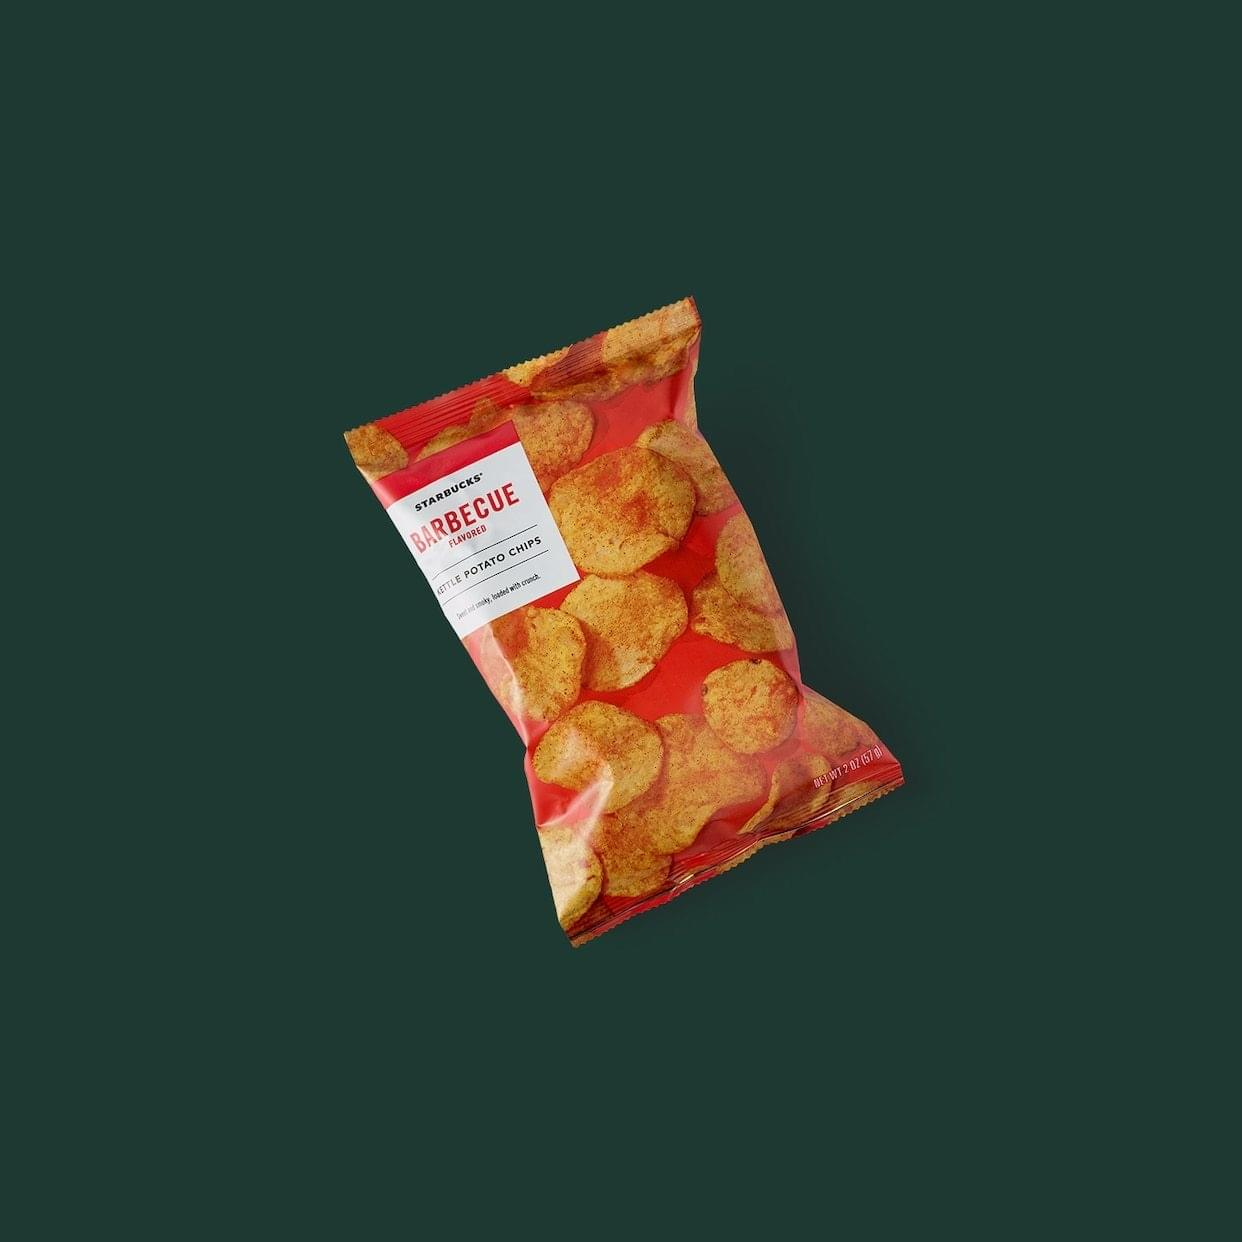 Starbucks BBQ Potato Chips Nutrition Facts